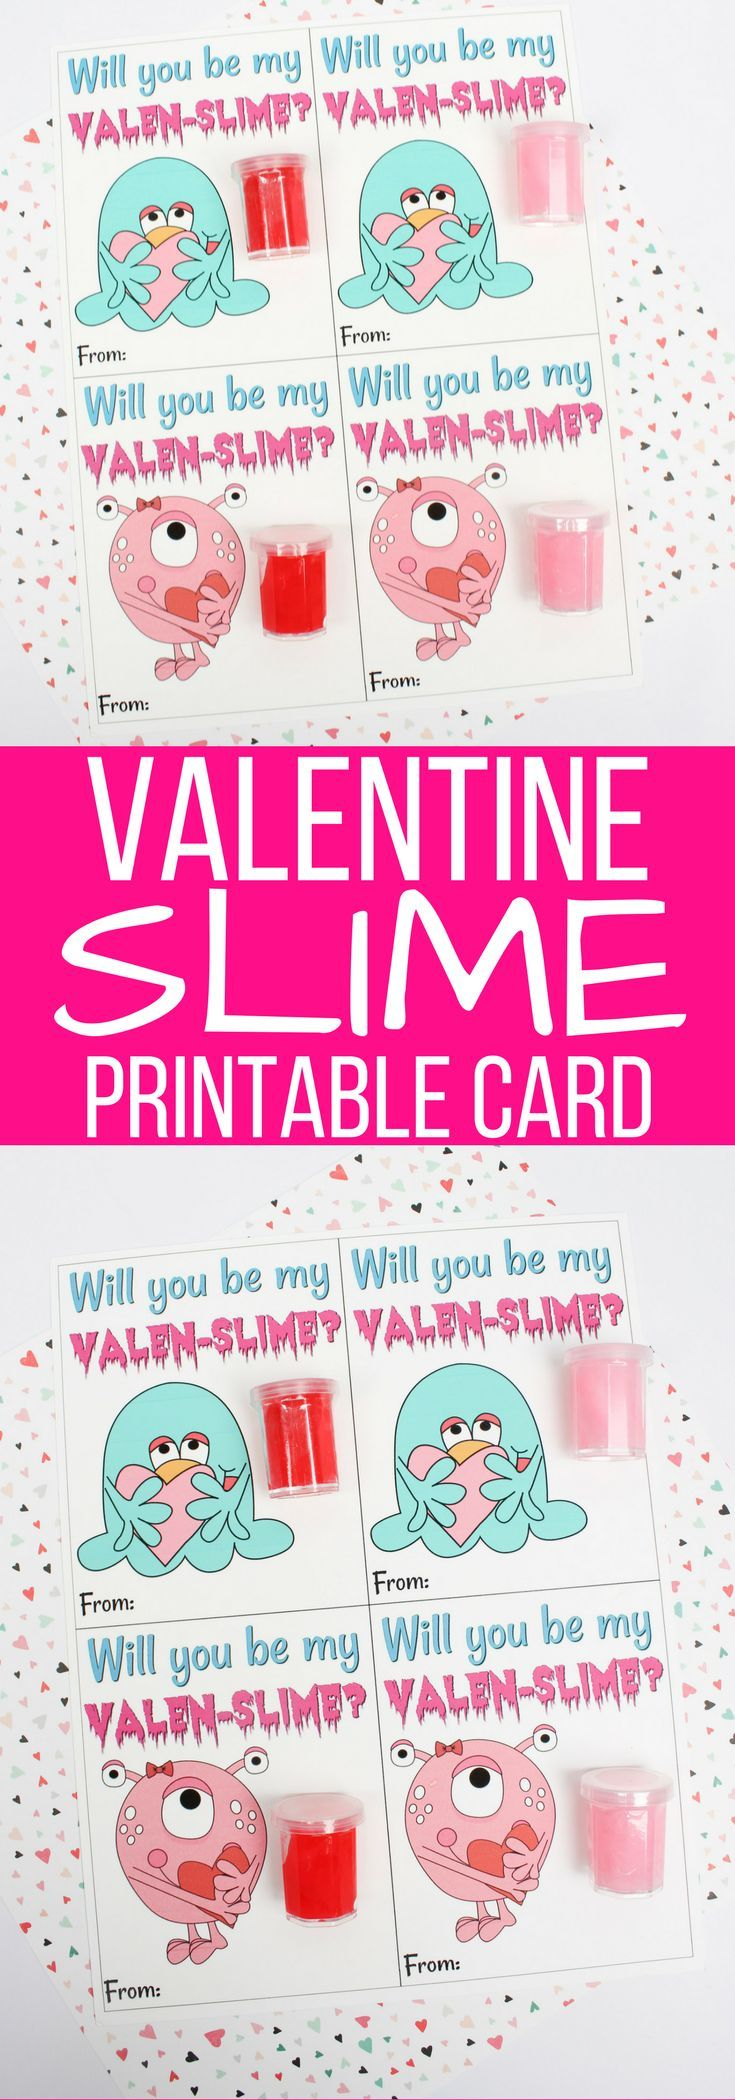 Seriously, how adorable is this Valentine Slime Printable Card!  This kids slime Valentines card is a free slime printable for Valentines Day. Your kids will love this Will you be my Valen-slime printable card.  #slimevalentine #valenslime #valentinesprintable